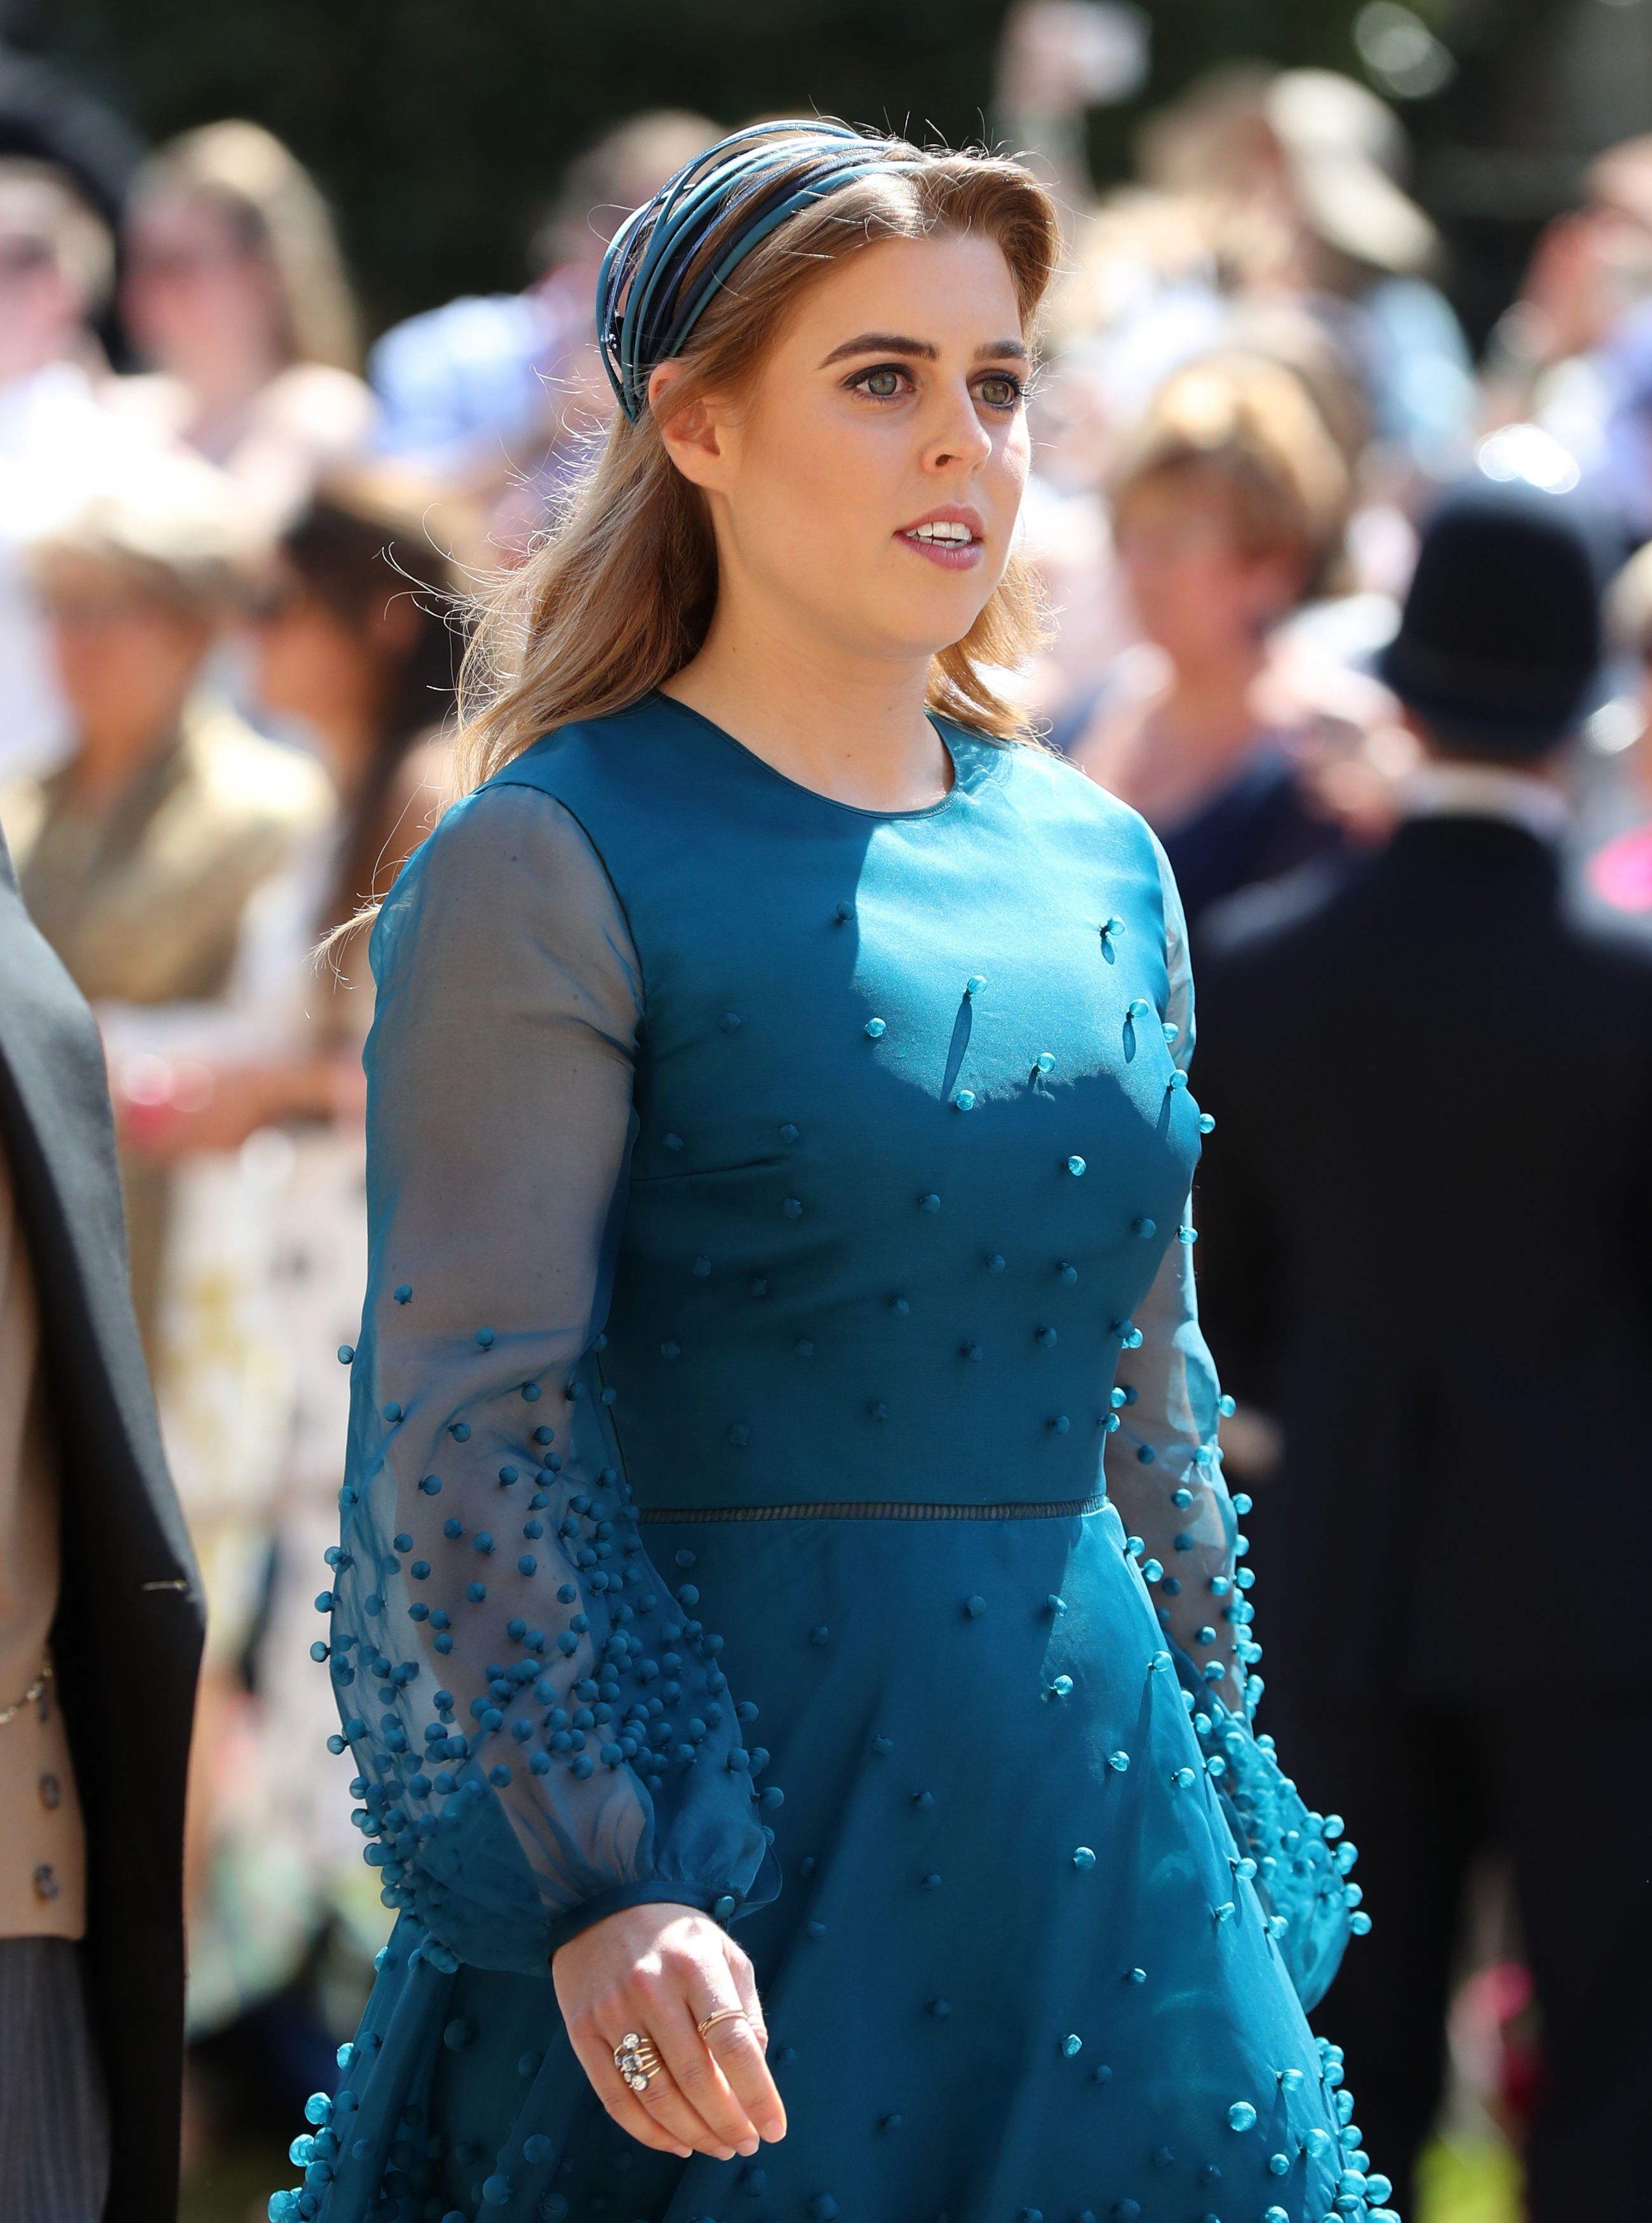 Princess Beatrice arrives at St George's Chapel at Windsor Castle before the wedding of Prince Harry to Meghan Markle on May 19, 2018 in Windsor, England   Photo: Getty Images